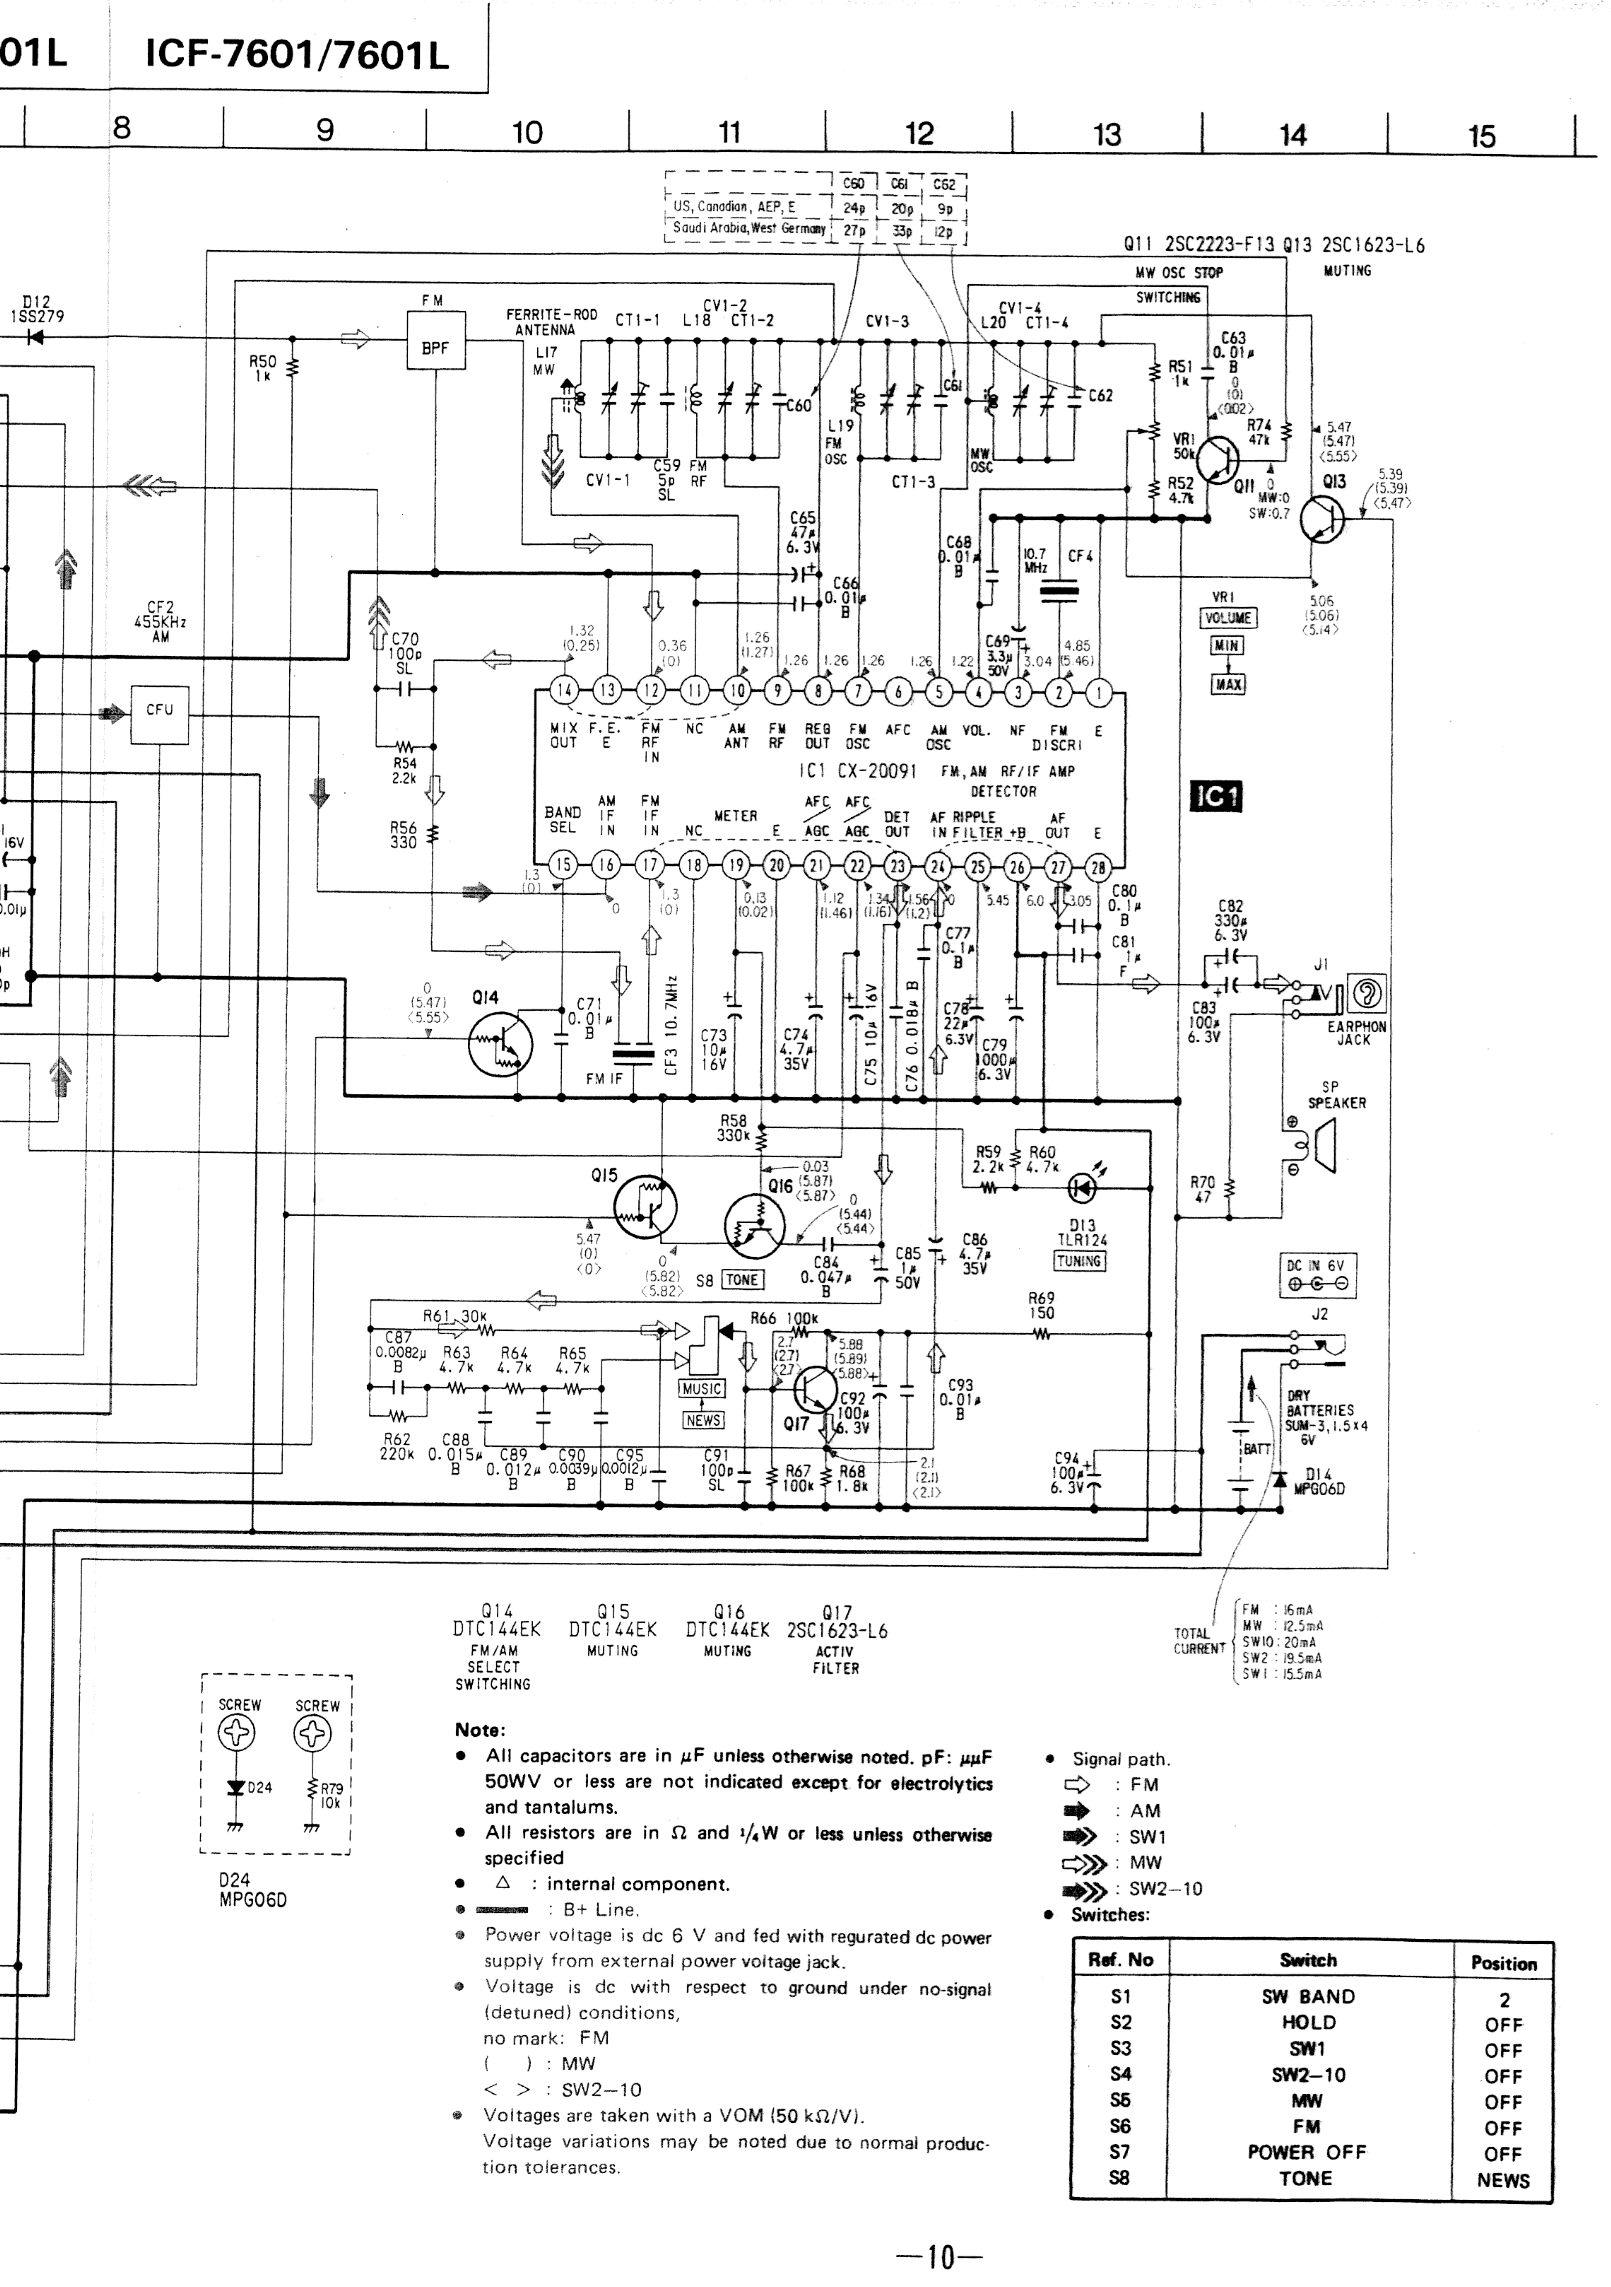 Wiring Diagram For Peterbilt 359. Diagram. Auto Wiring Diagram